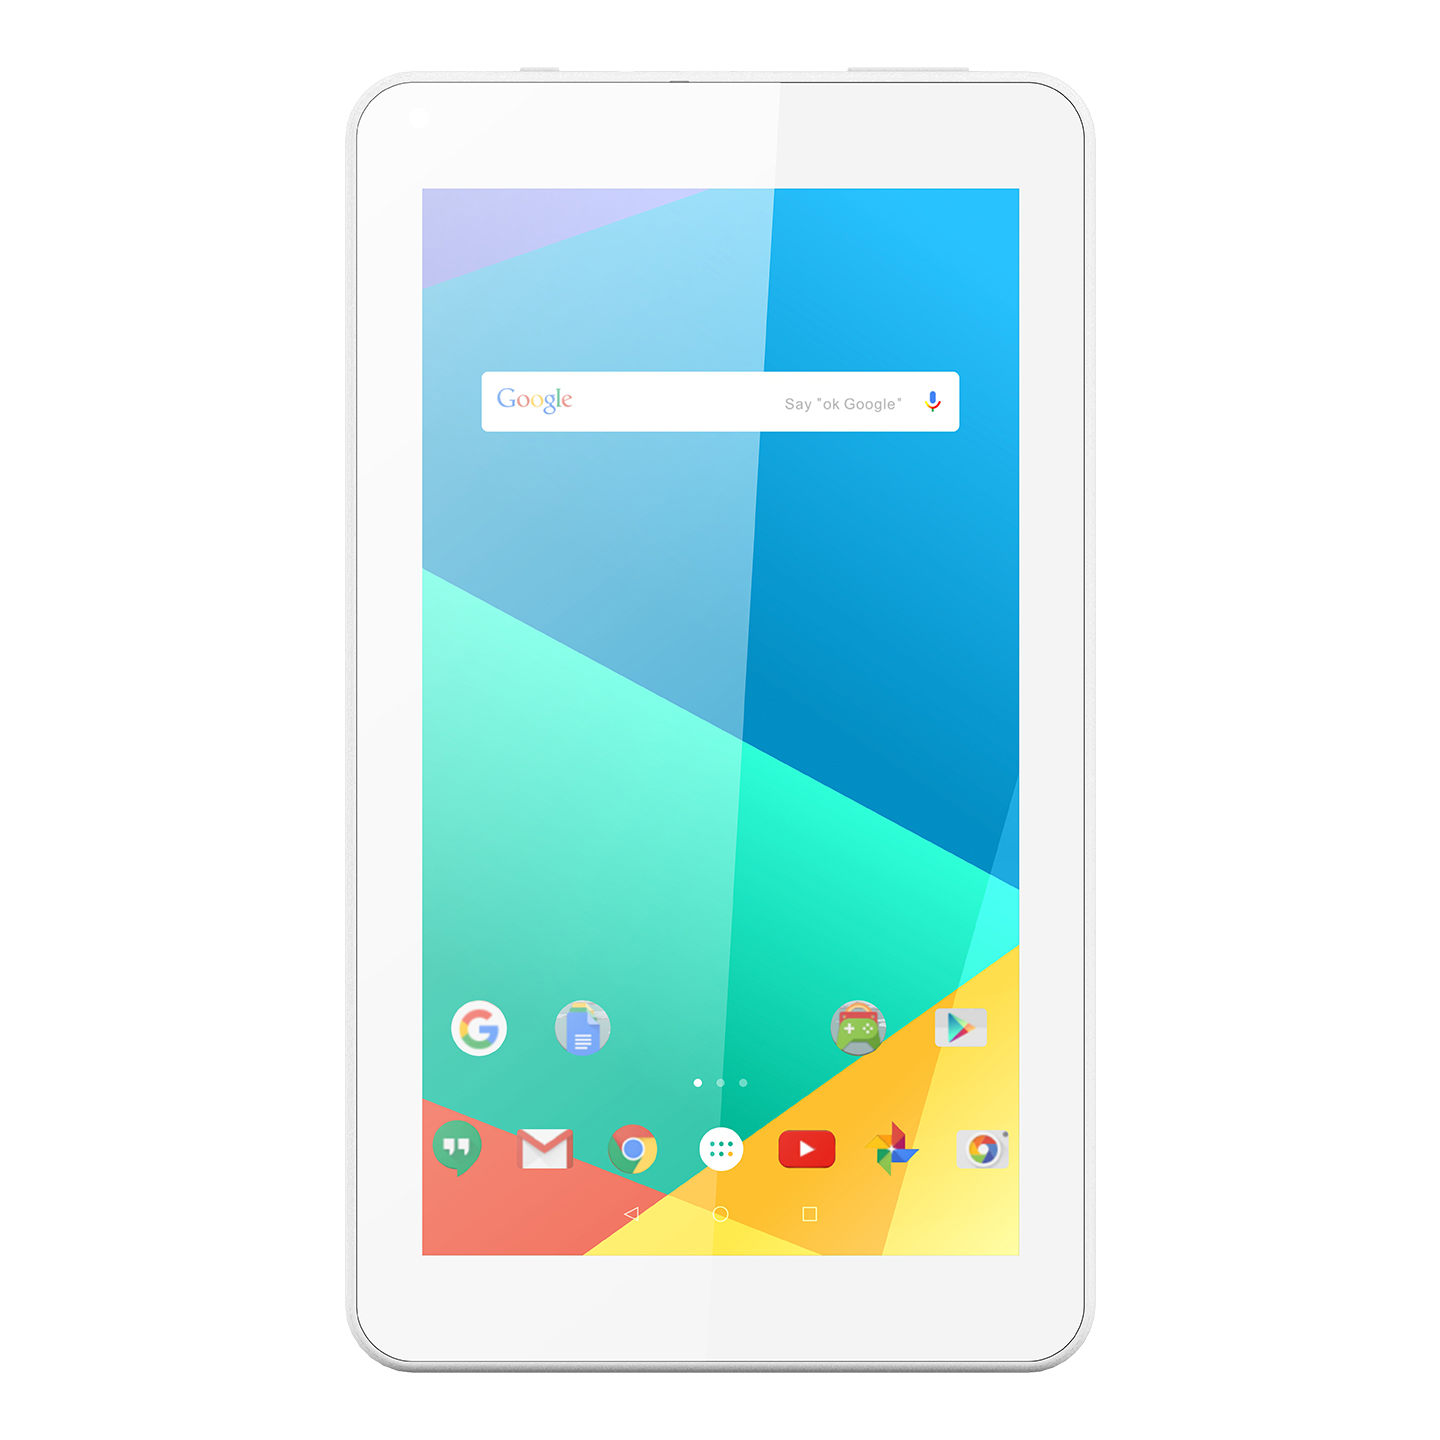 "EVEREST WİNNER PRO EW-2021 QUAD CORE 2GB DDR3 16GB WIFI/BT 7"" 1024X600 CIFT KAMERA BEYAZ ANDROID 10.0 GO TABLET"